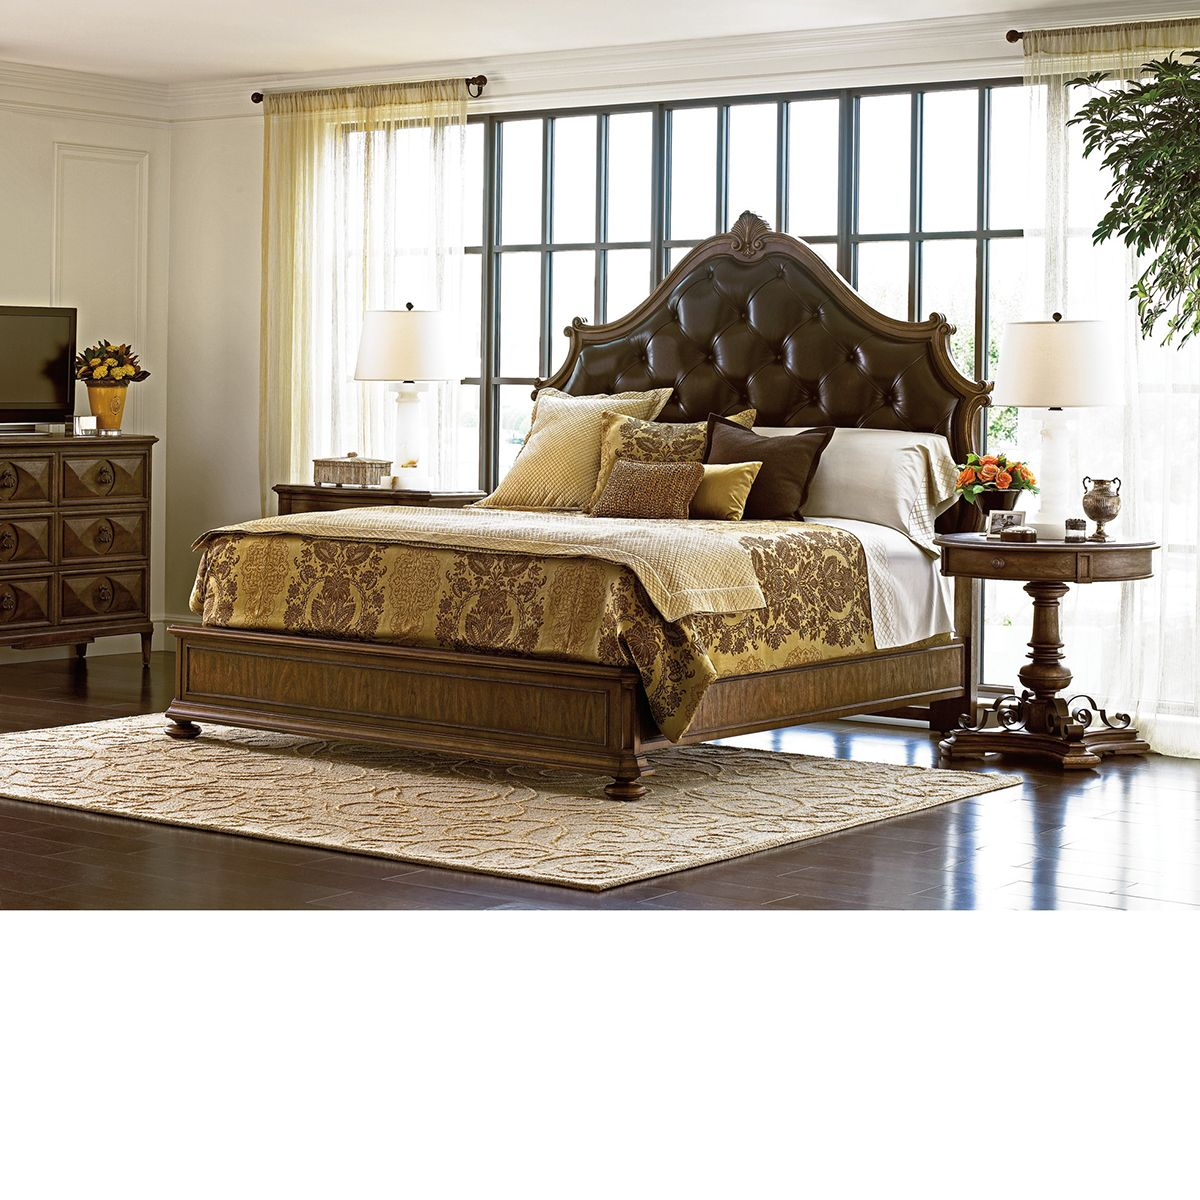 VILLA FIORA KING UPHOLSTERED BED